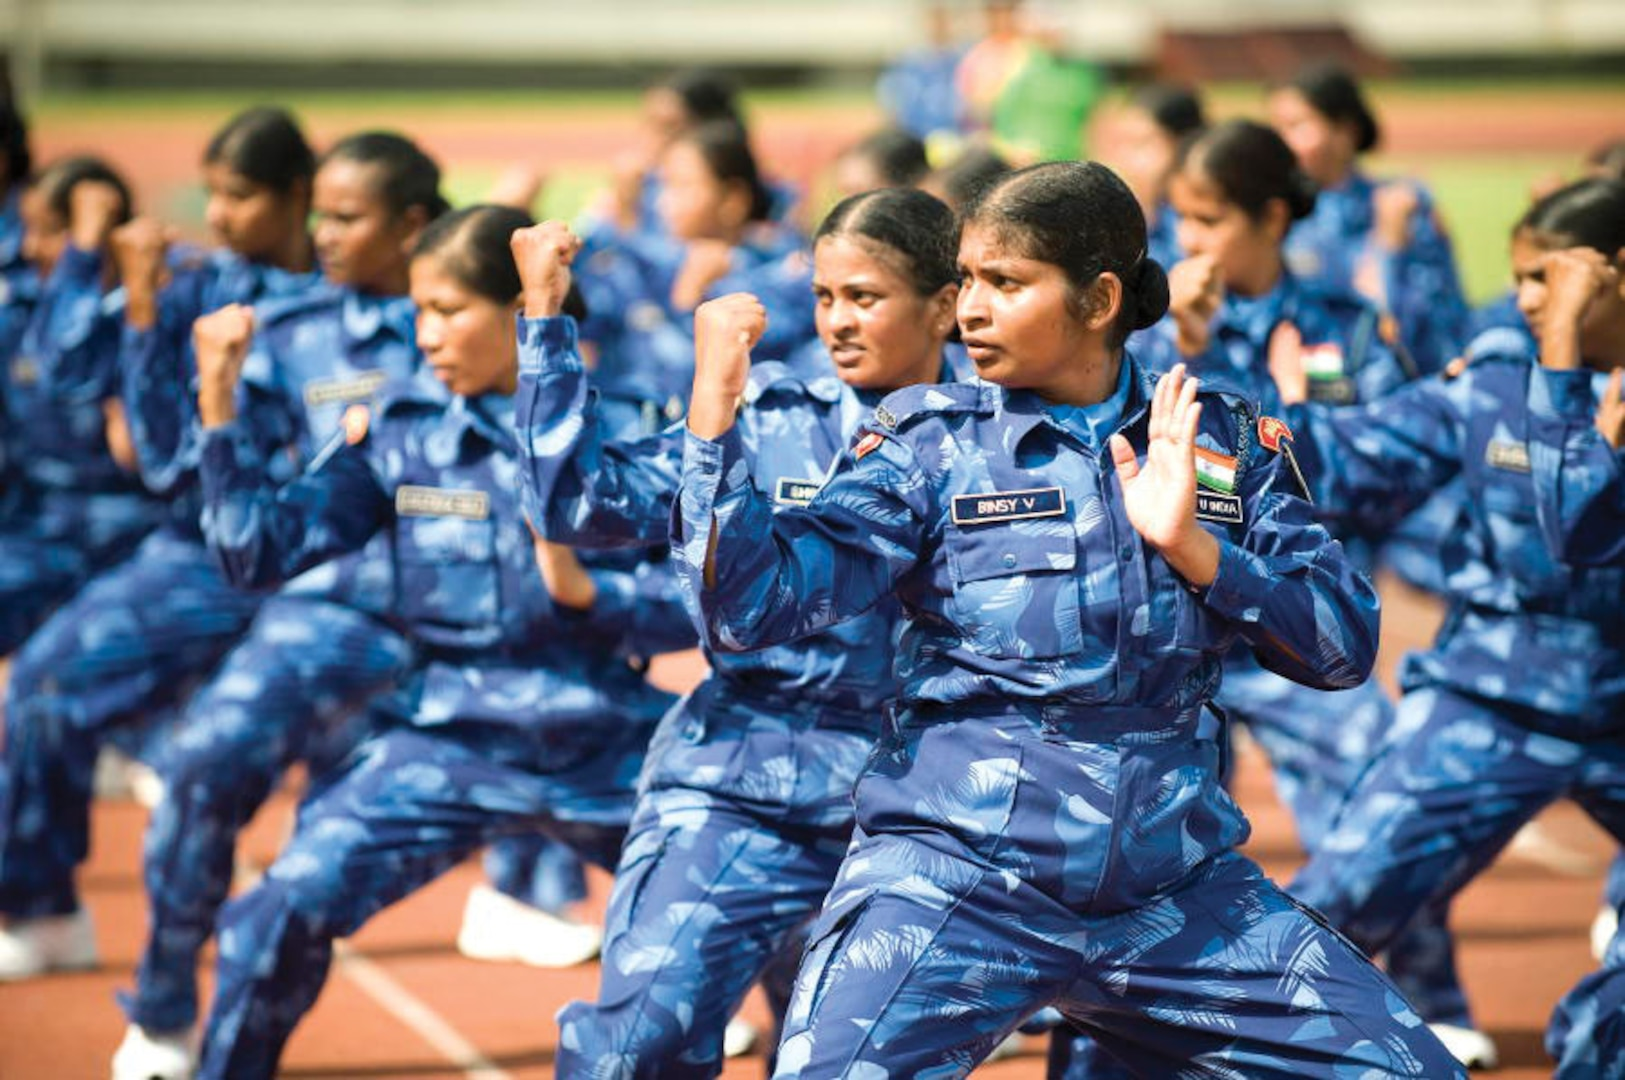 Members of the all-female Indian Formed Police Unit of the United Nations Mission in Liberia (UNMIL) perform a martial arts exercise prior to receiving medals of honor in recognition of their service.